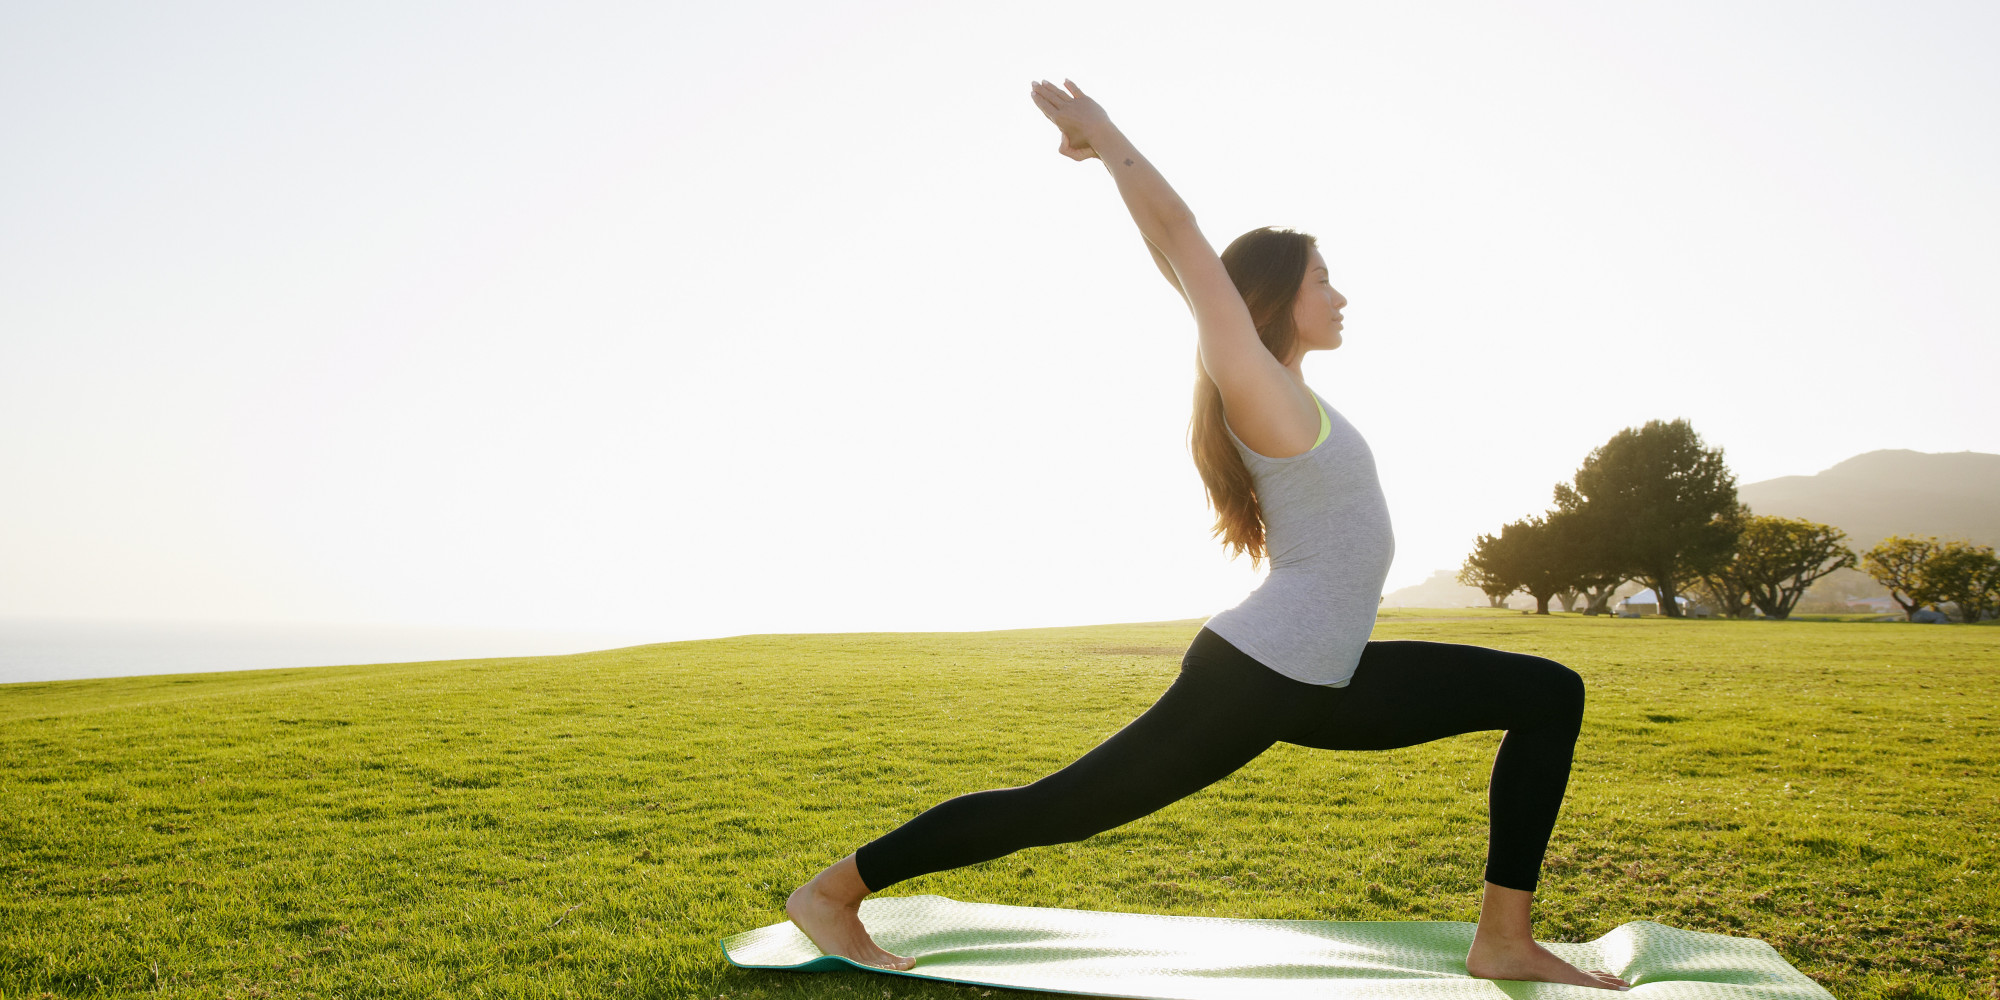 Tamil Nadu reports highest number of Yoga & Naturopathy practitioners